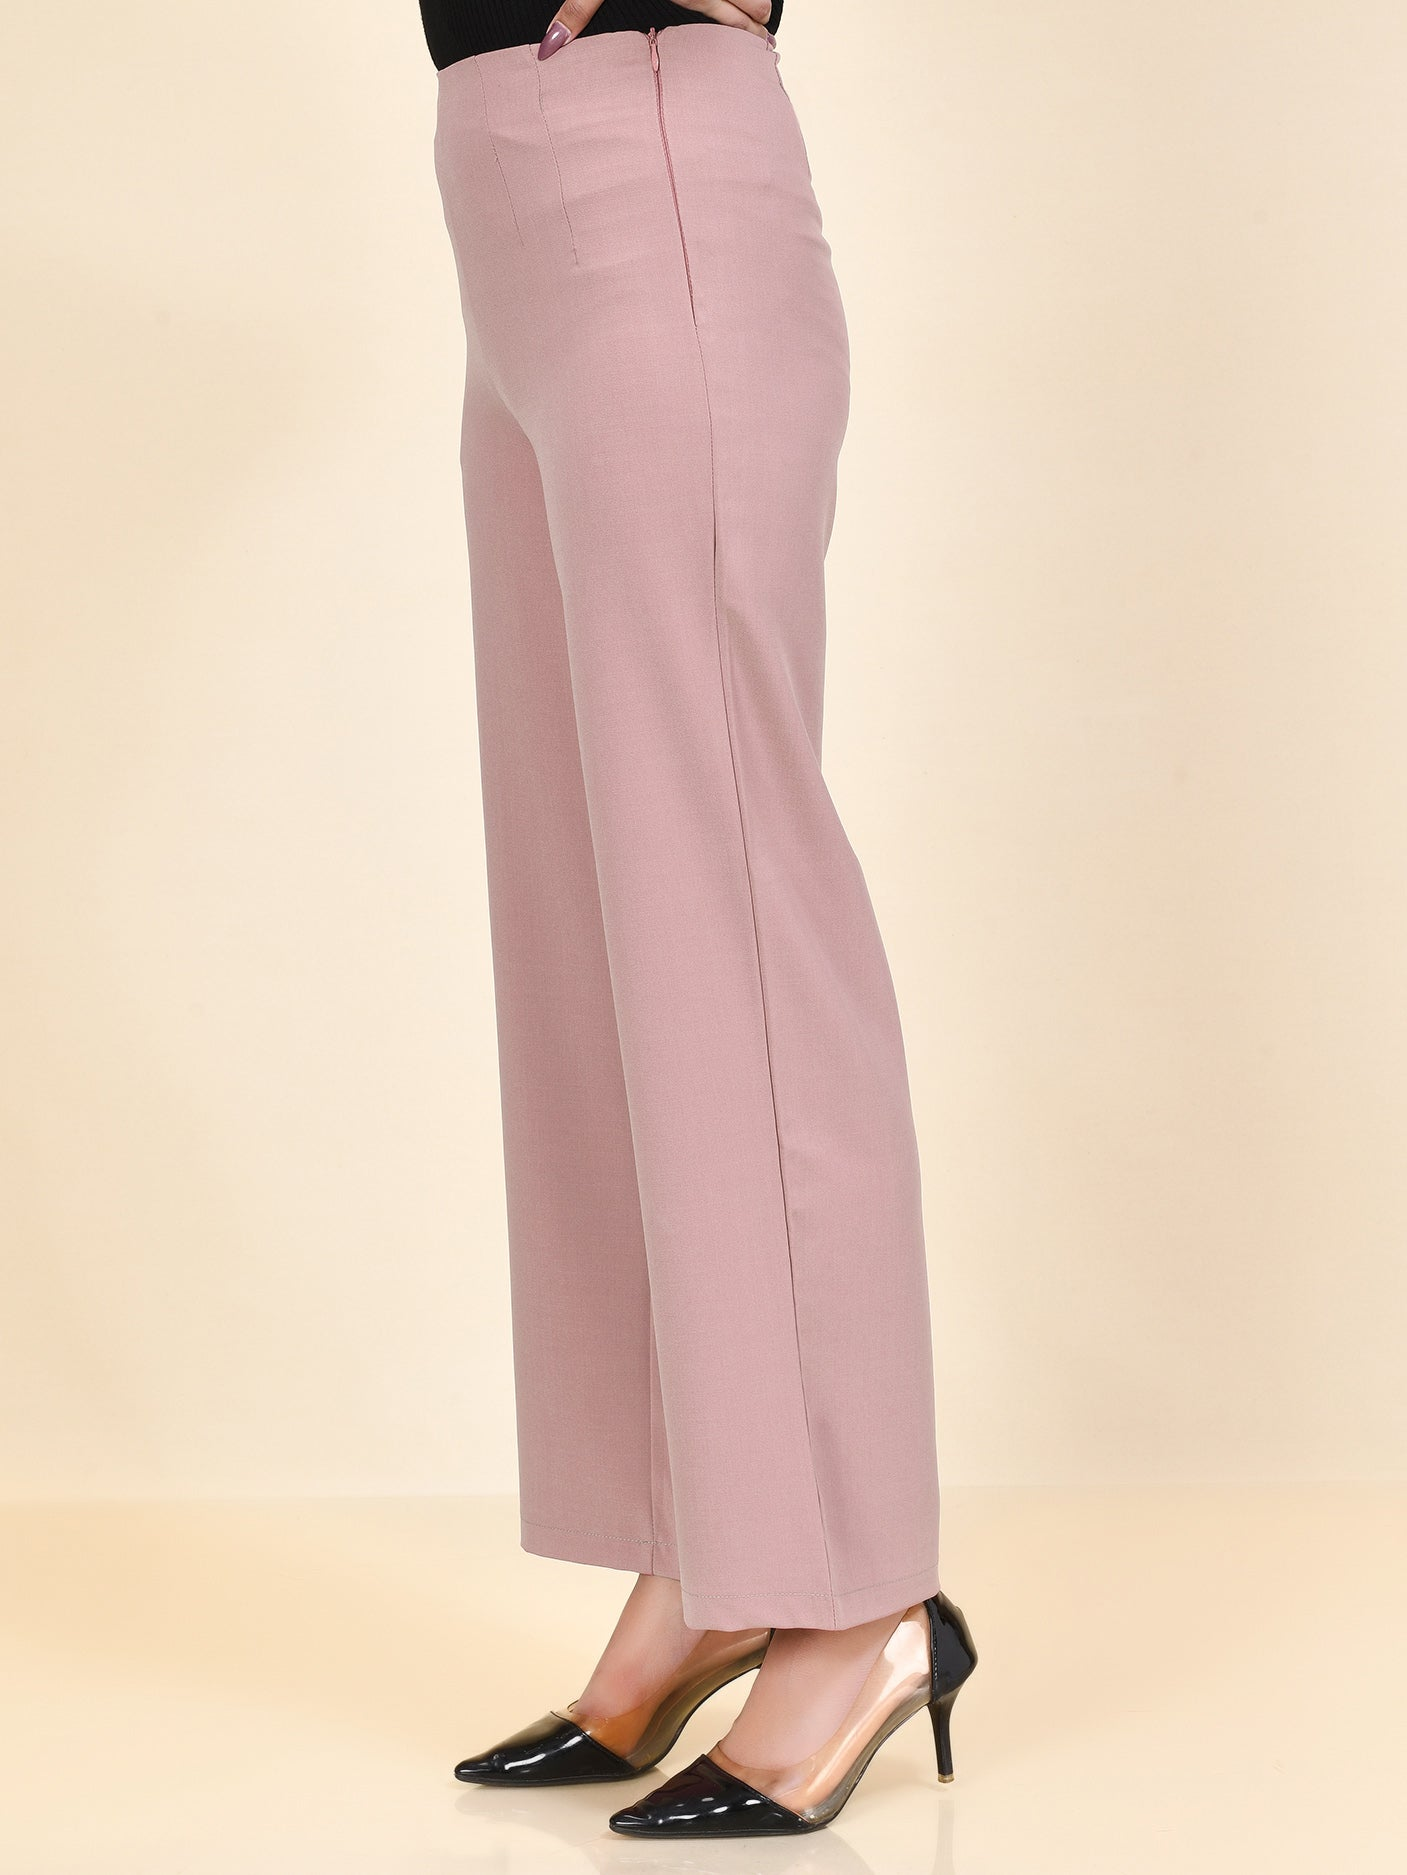 Grip Pants - Light Pink